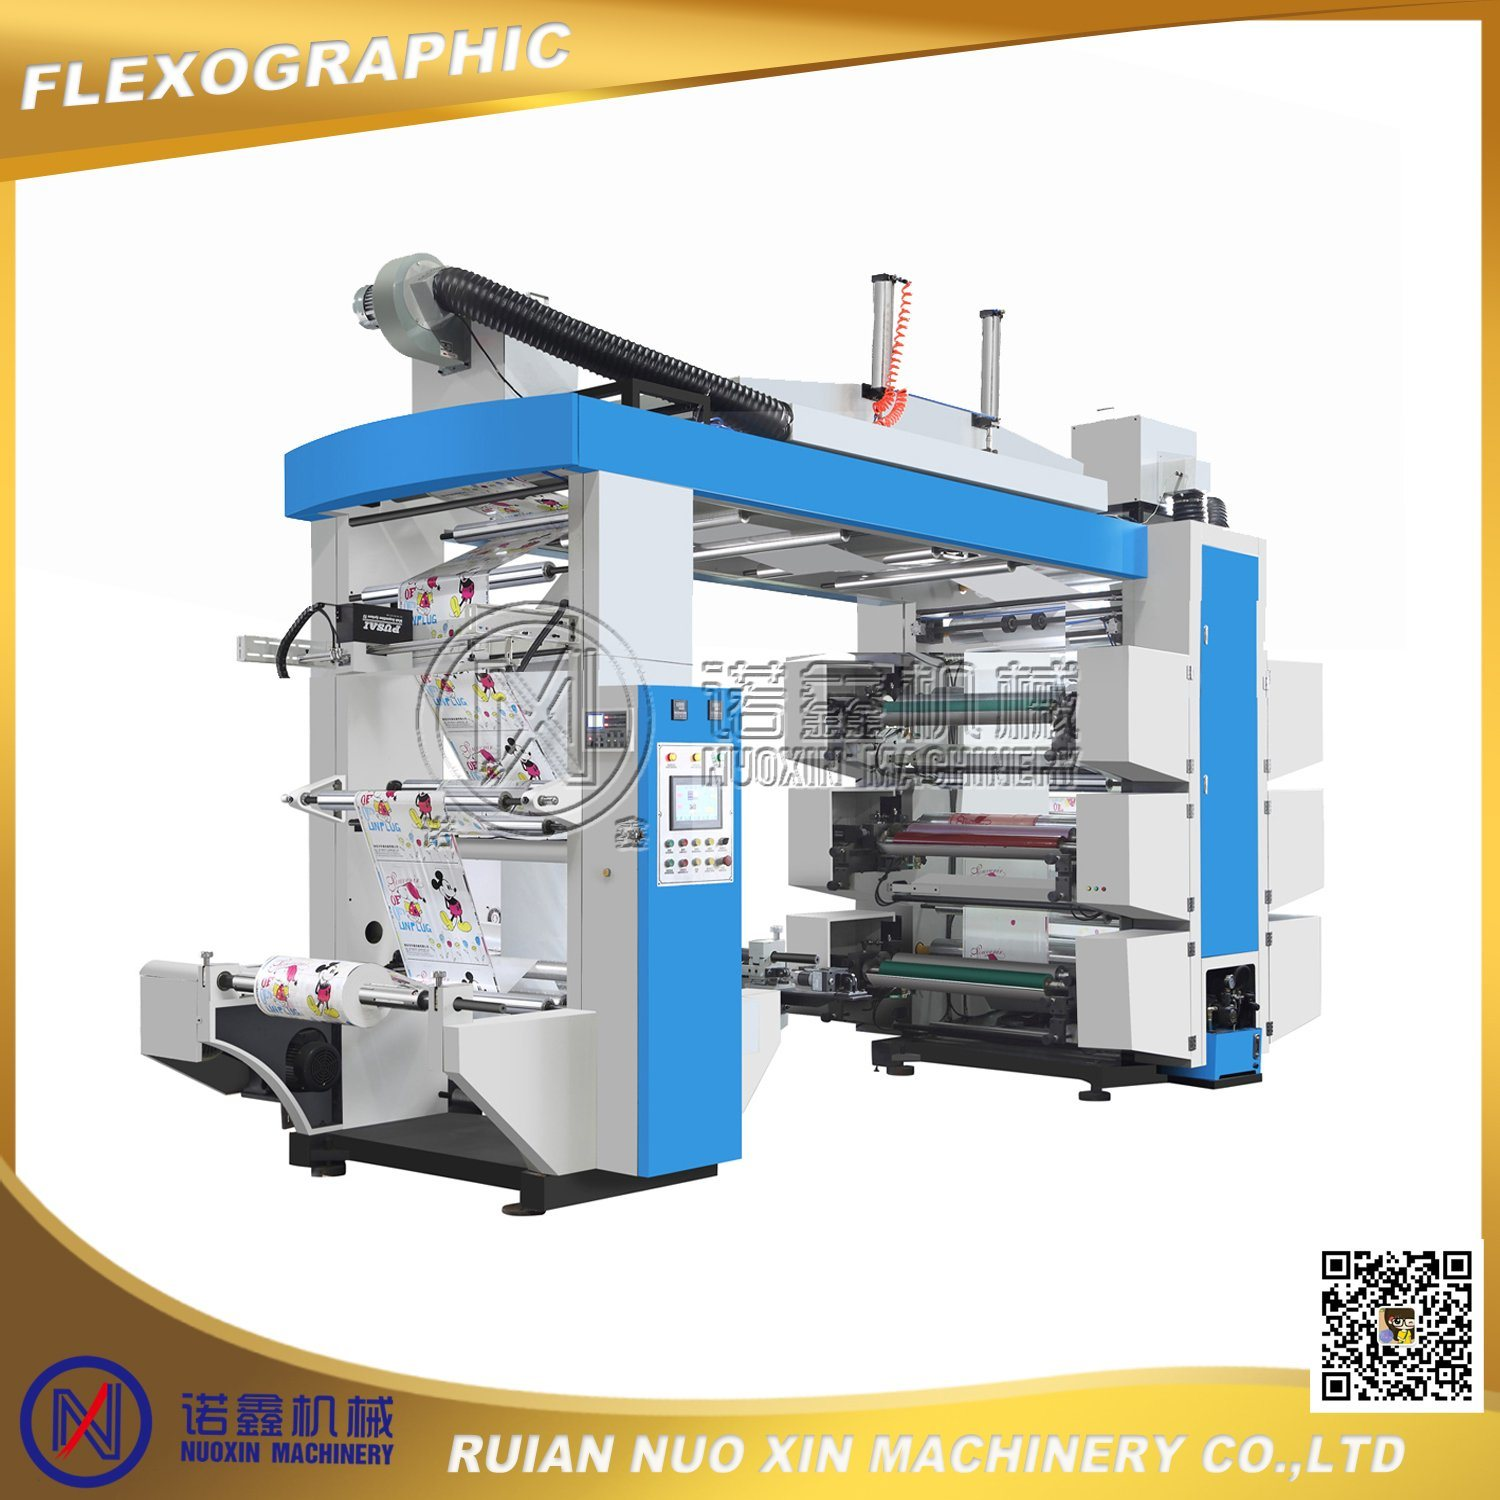 6 Color Synchronous Belt Drive High Speed Flexographic Printing Machine